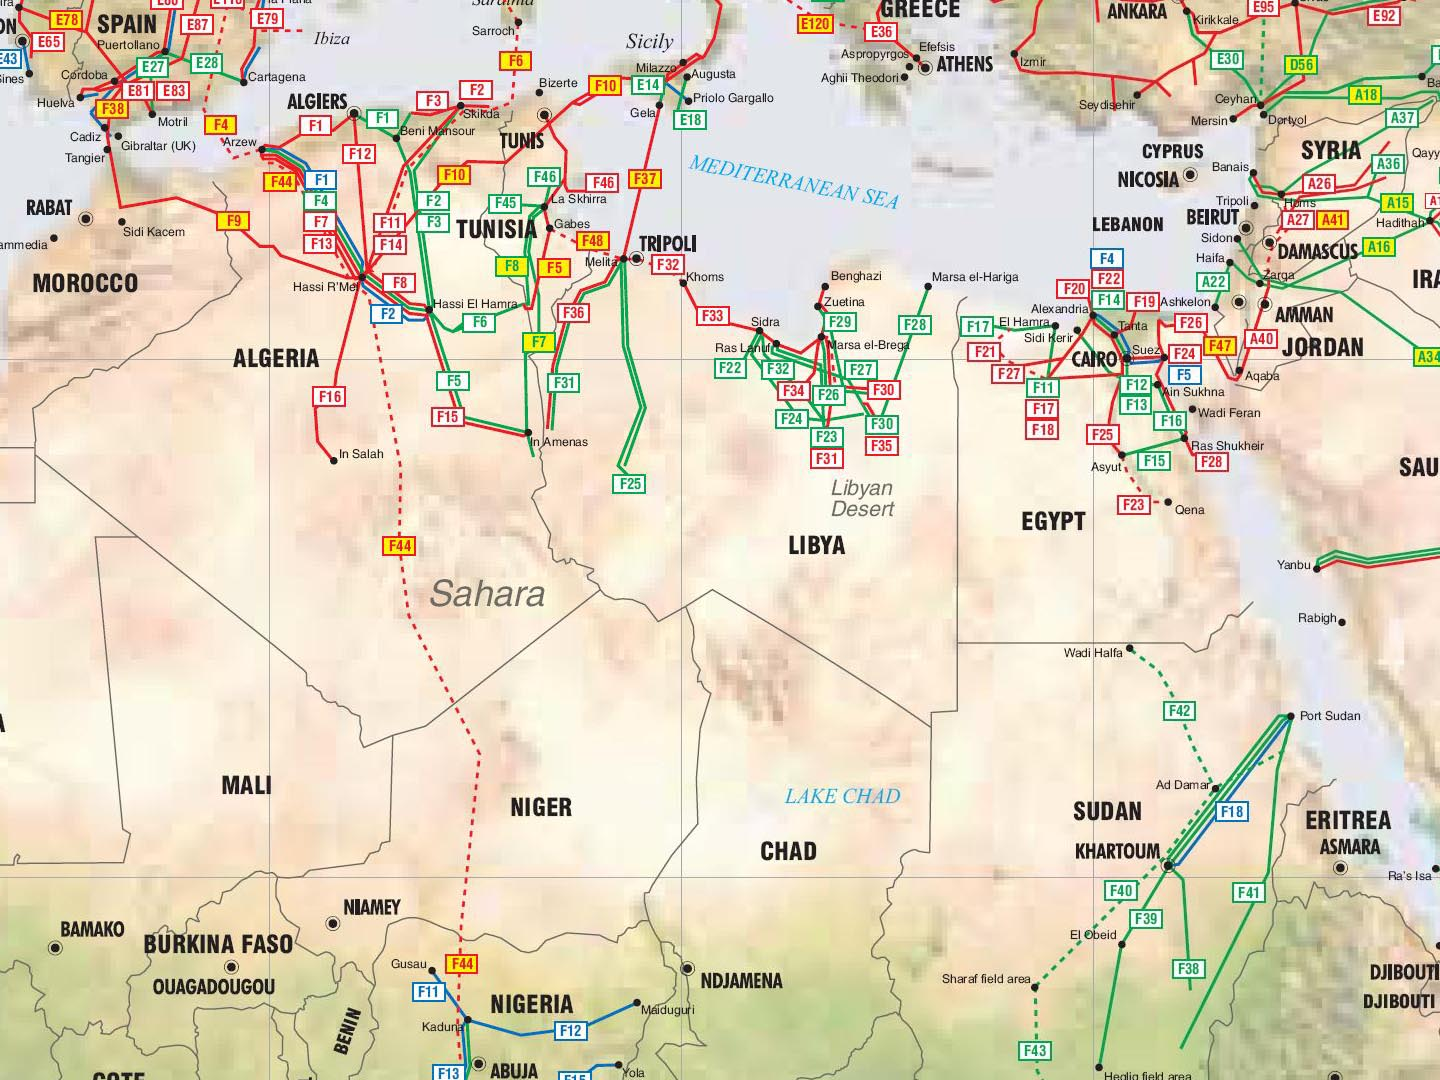 as for libya much has been talked about in the media that it s of more importance due to the fact that it actually produces more crude oil than egypt or